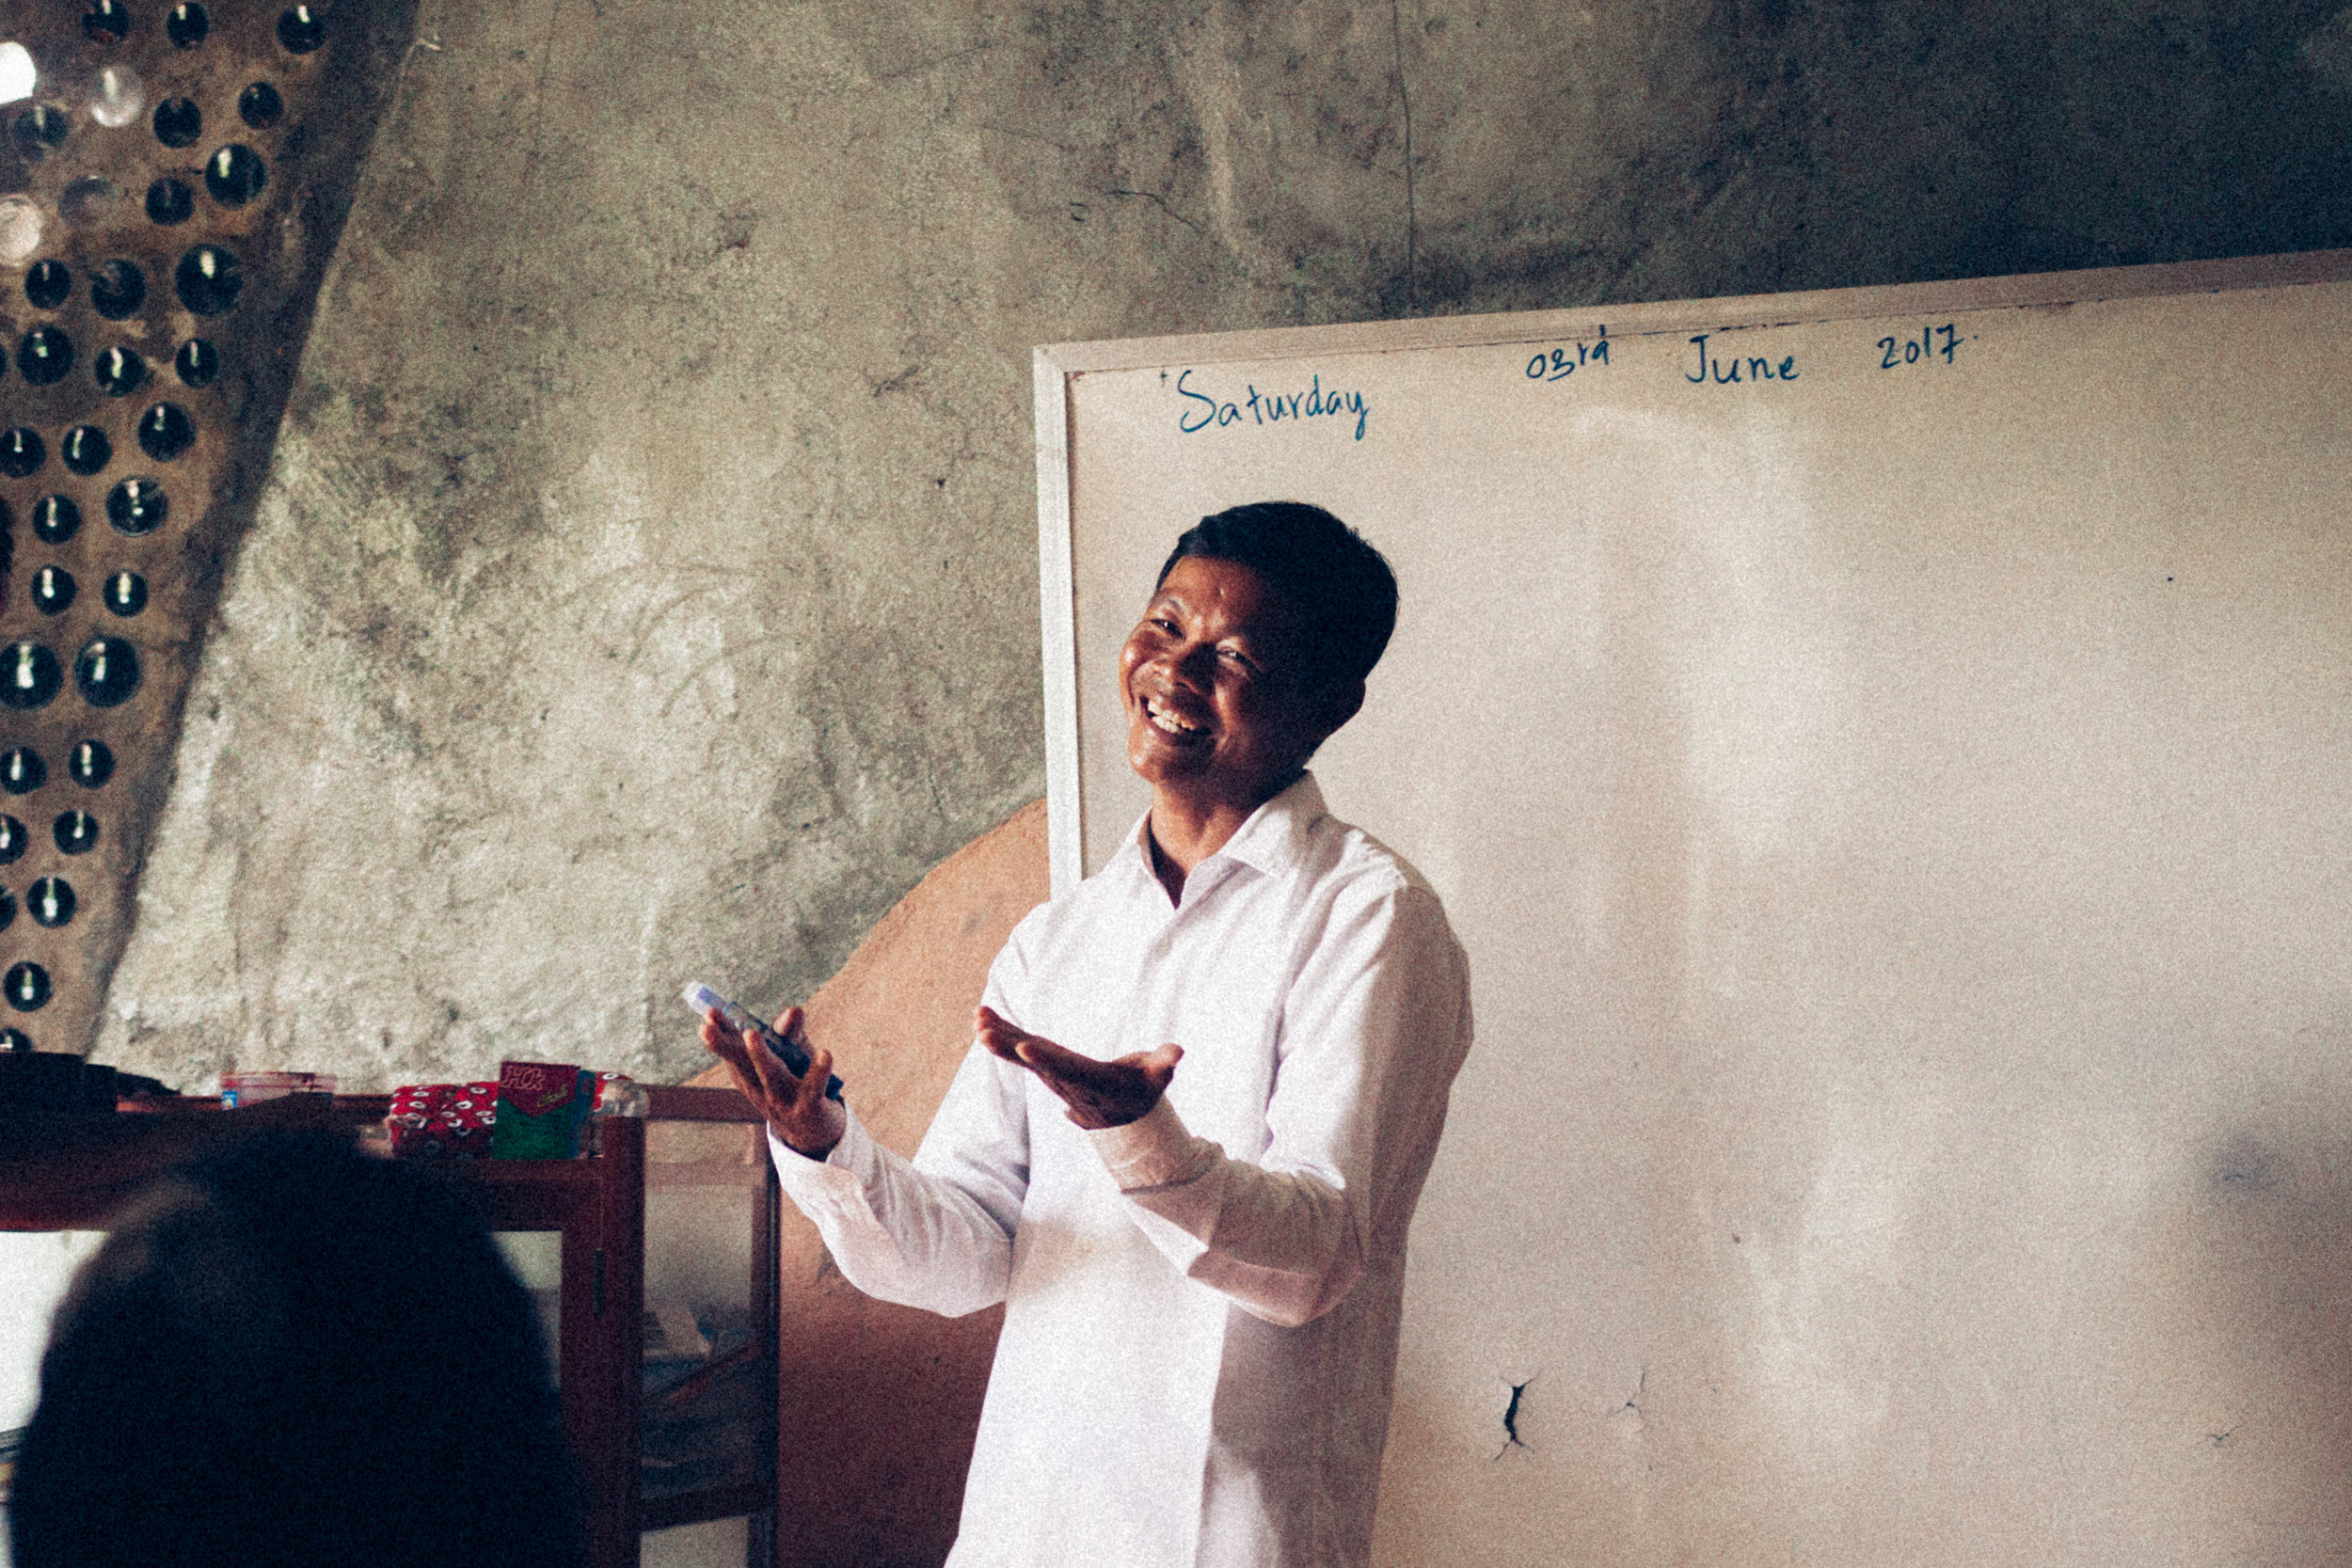 Our English teacher Saophi(when our volunteers aren't around), and other subjects for the morning and afternoon classes.